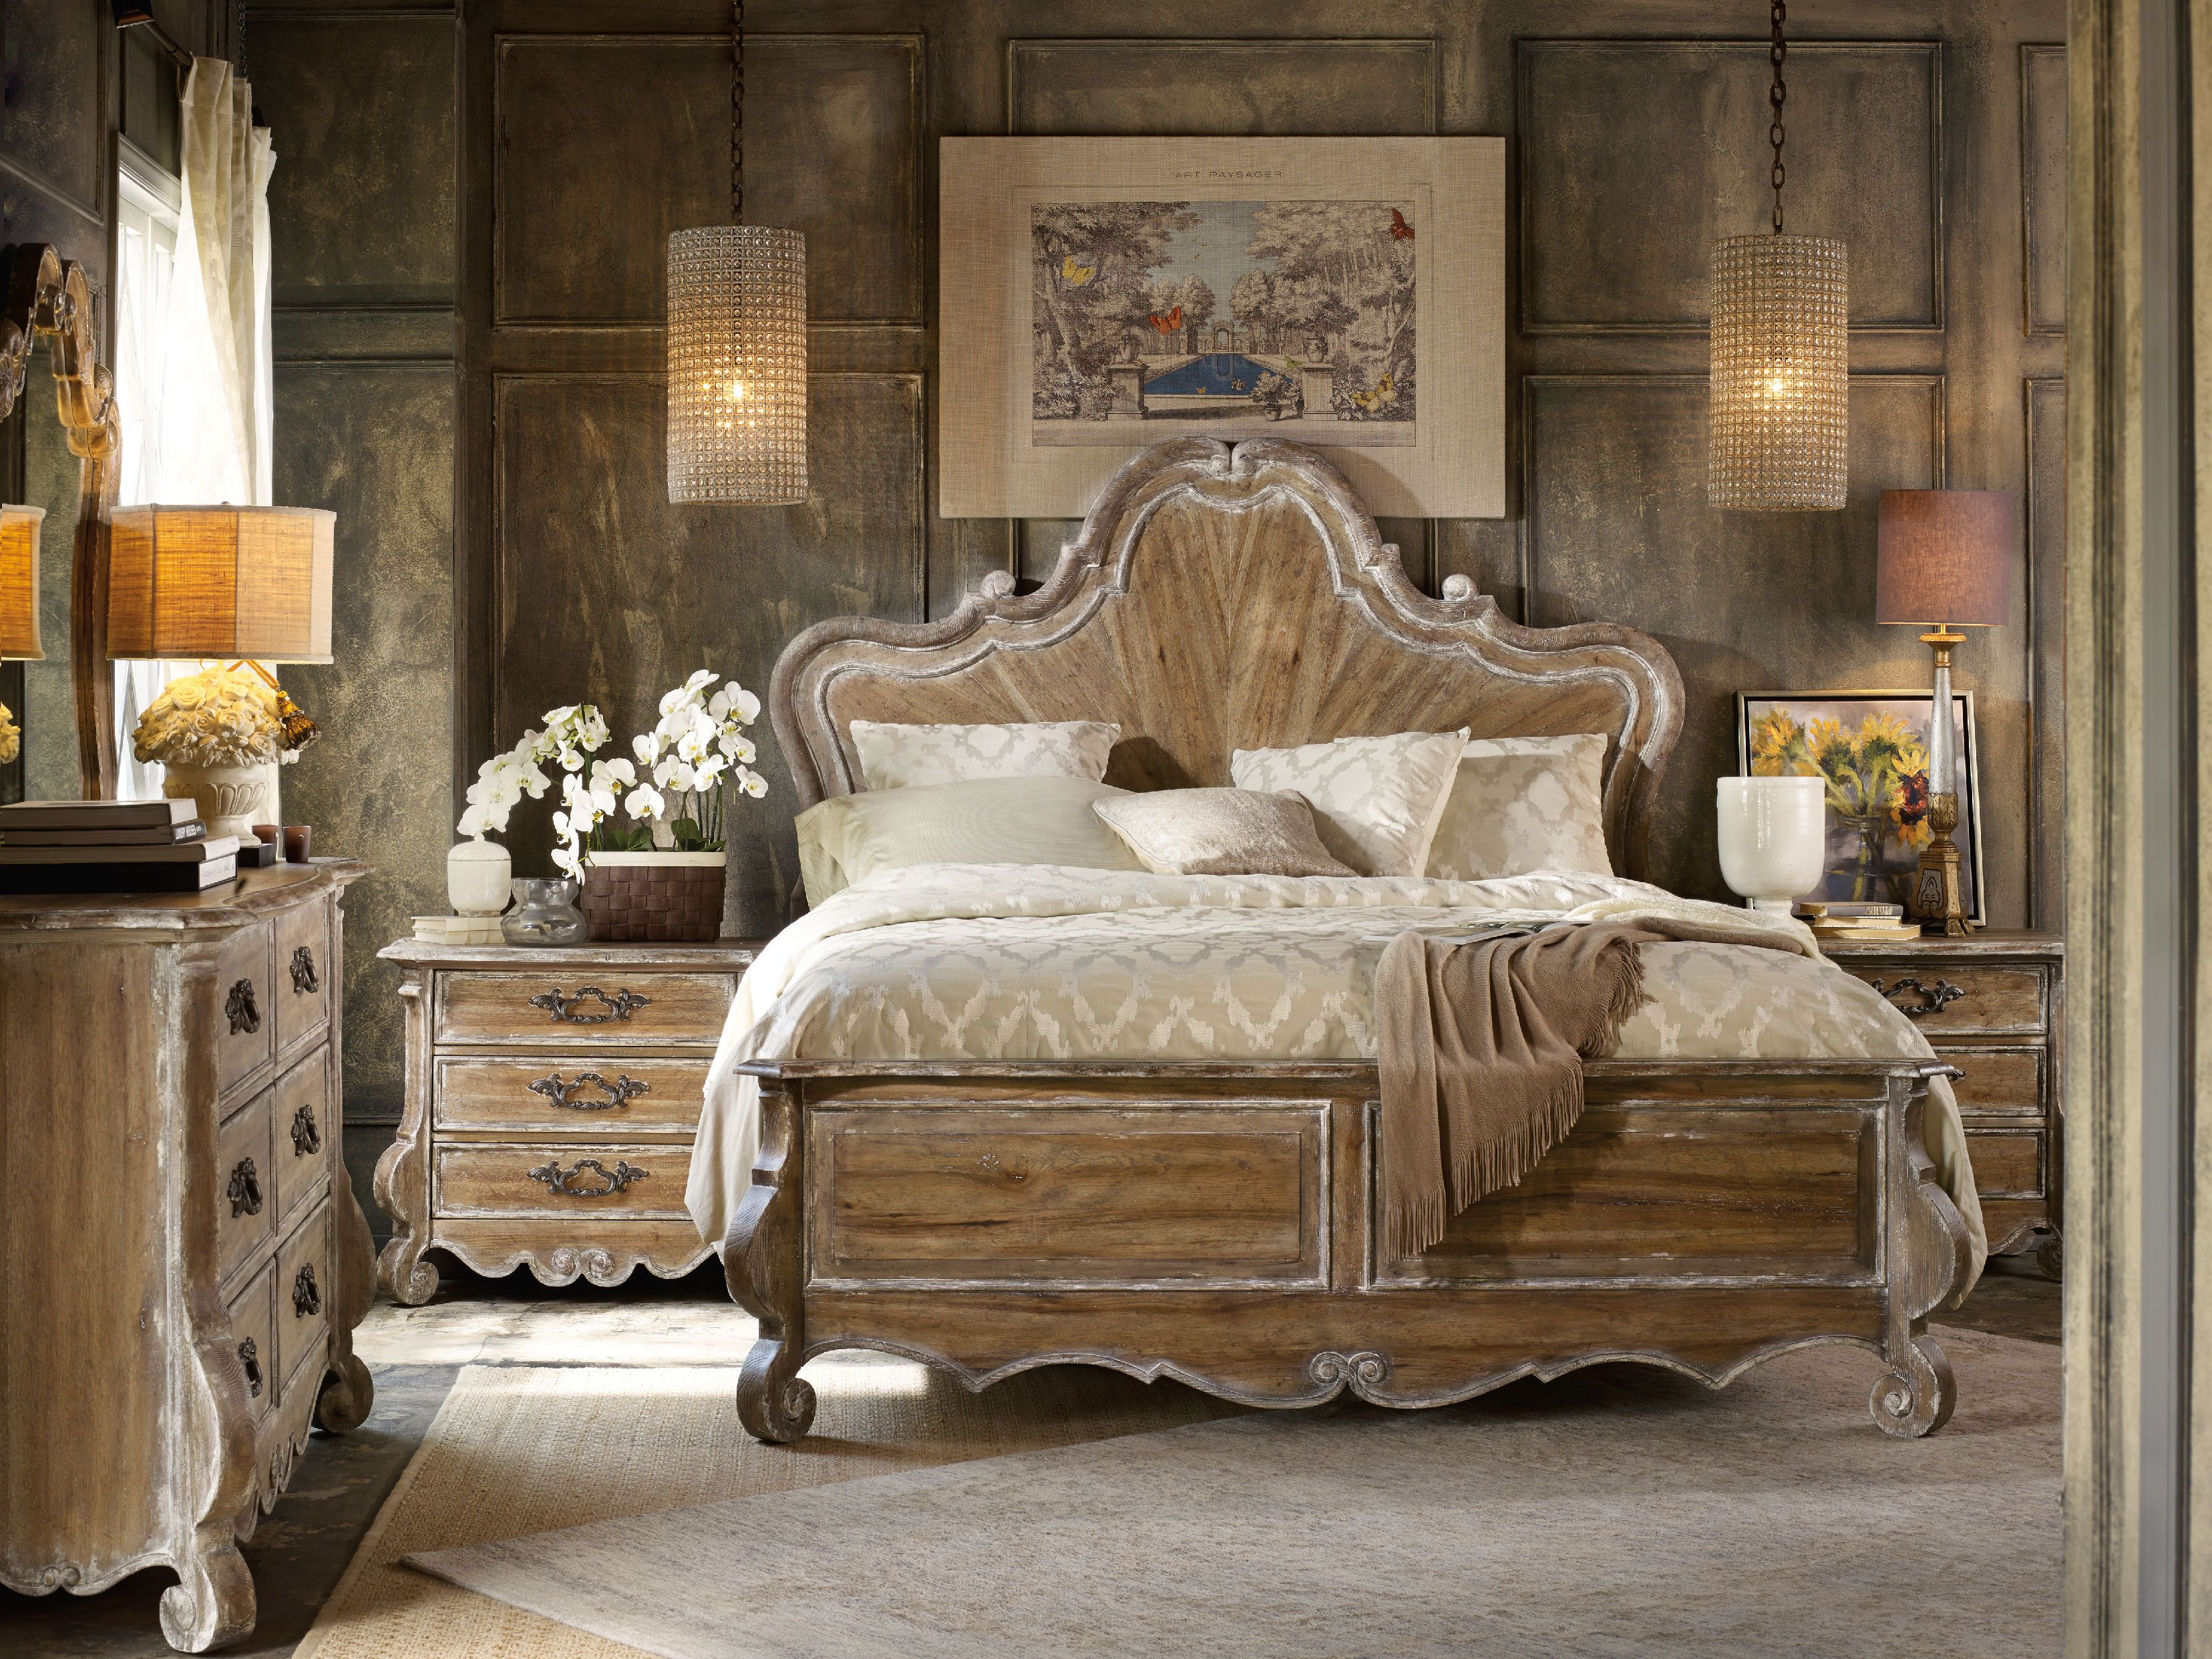 Hooker Furniture Bedroom Chatelet King Wood Panel Bed 5300